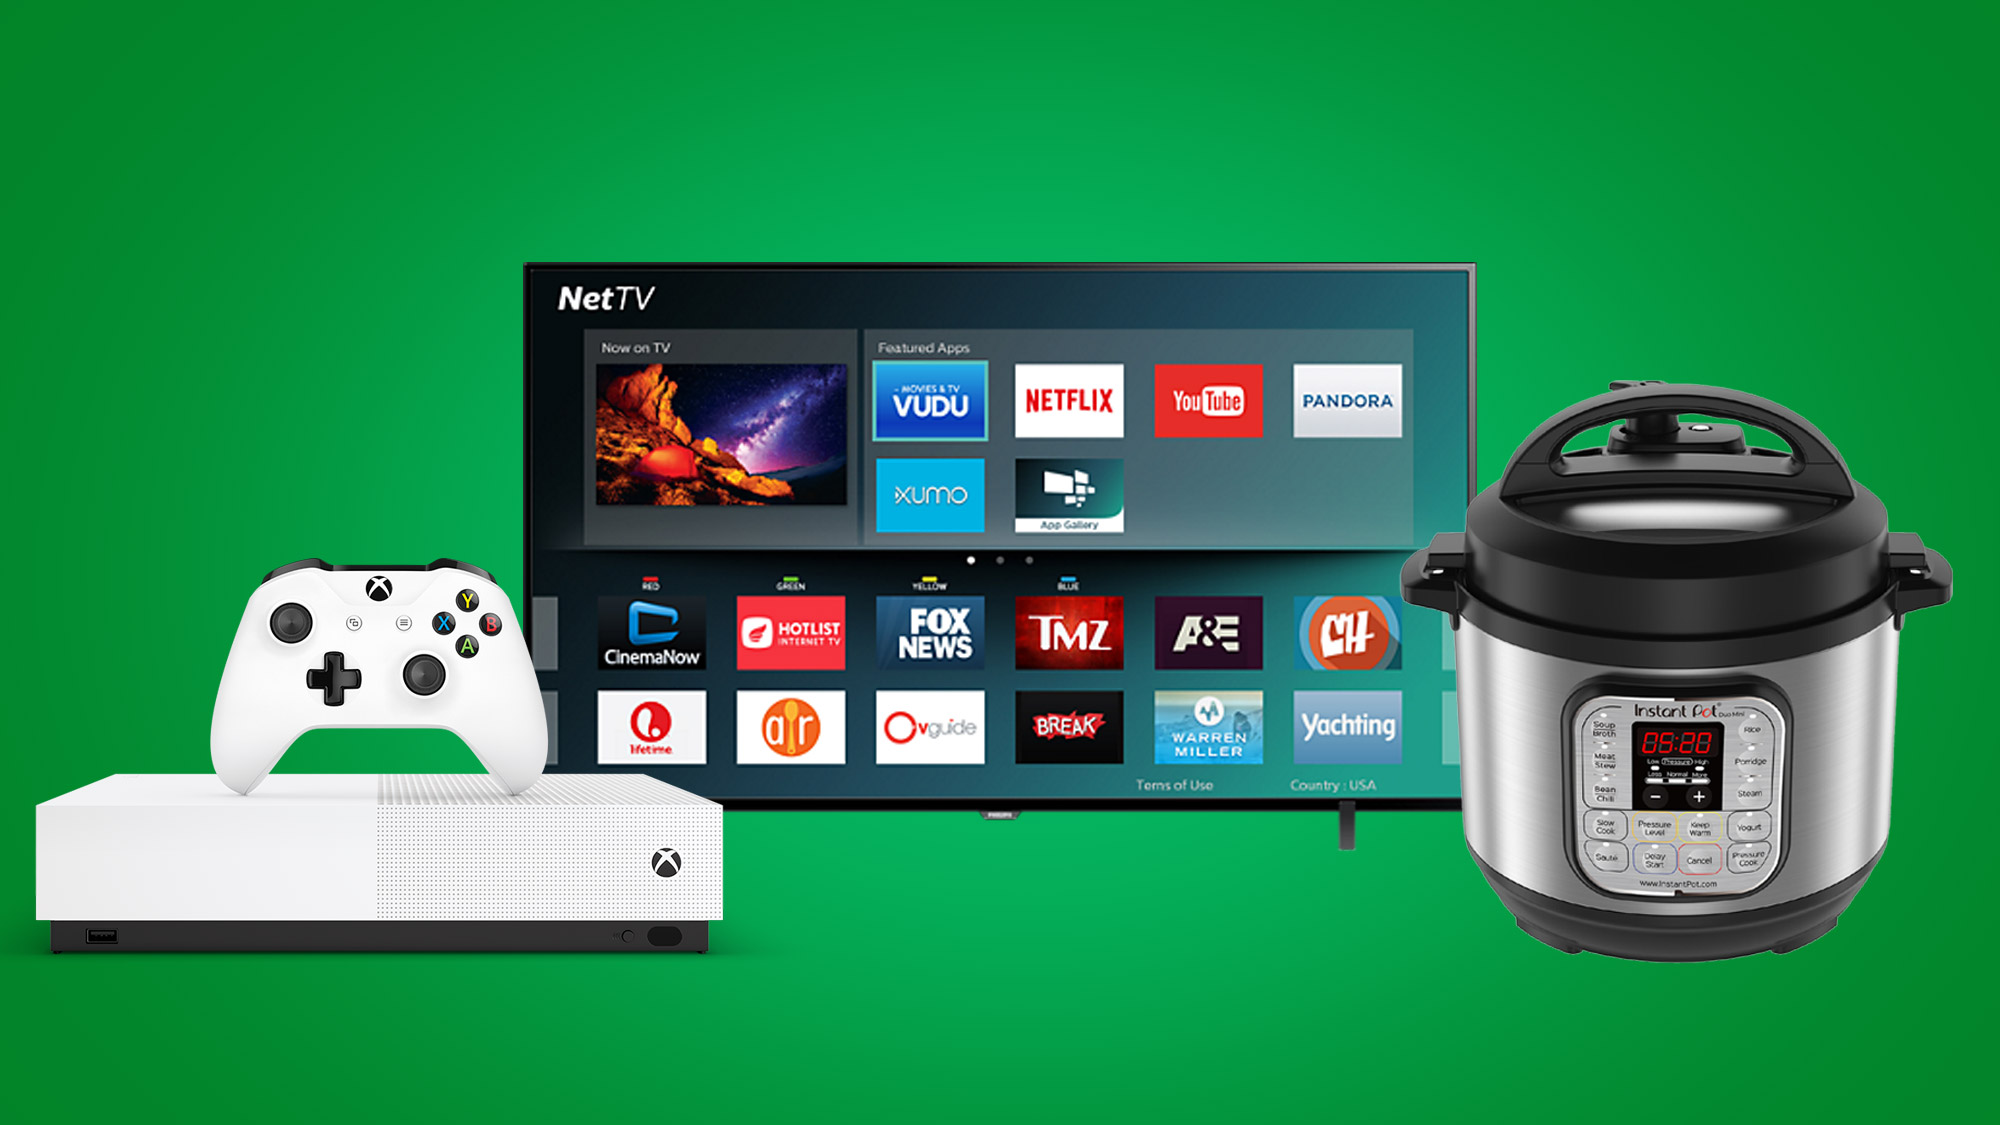 Walmart's Green Monday sale: the best deals on TVs, laptops, and more